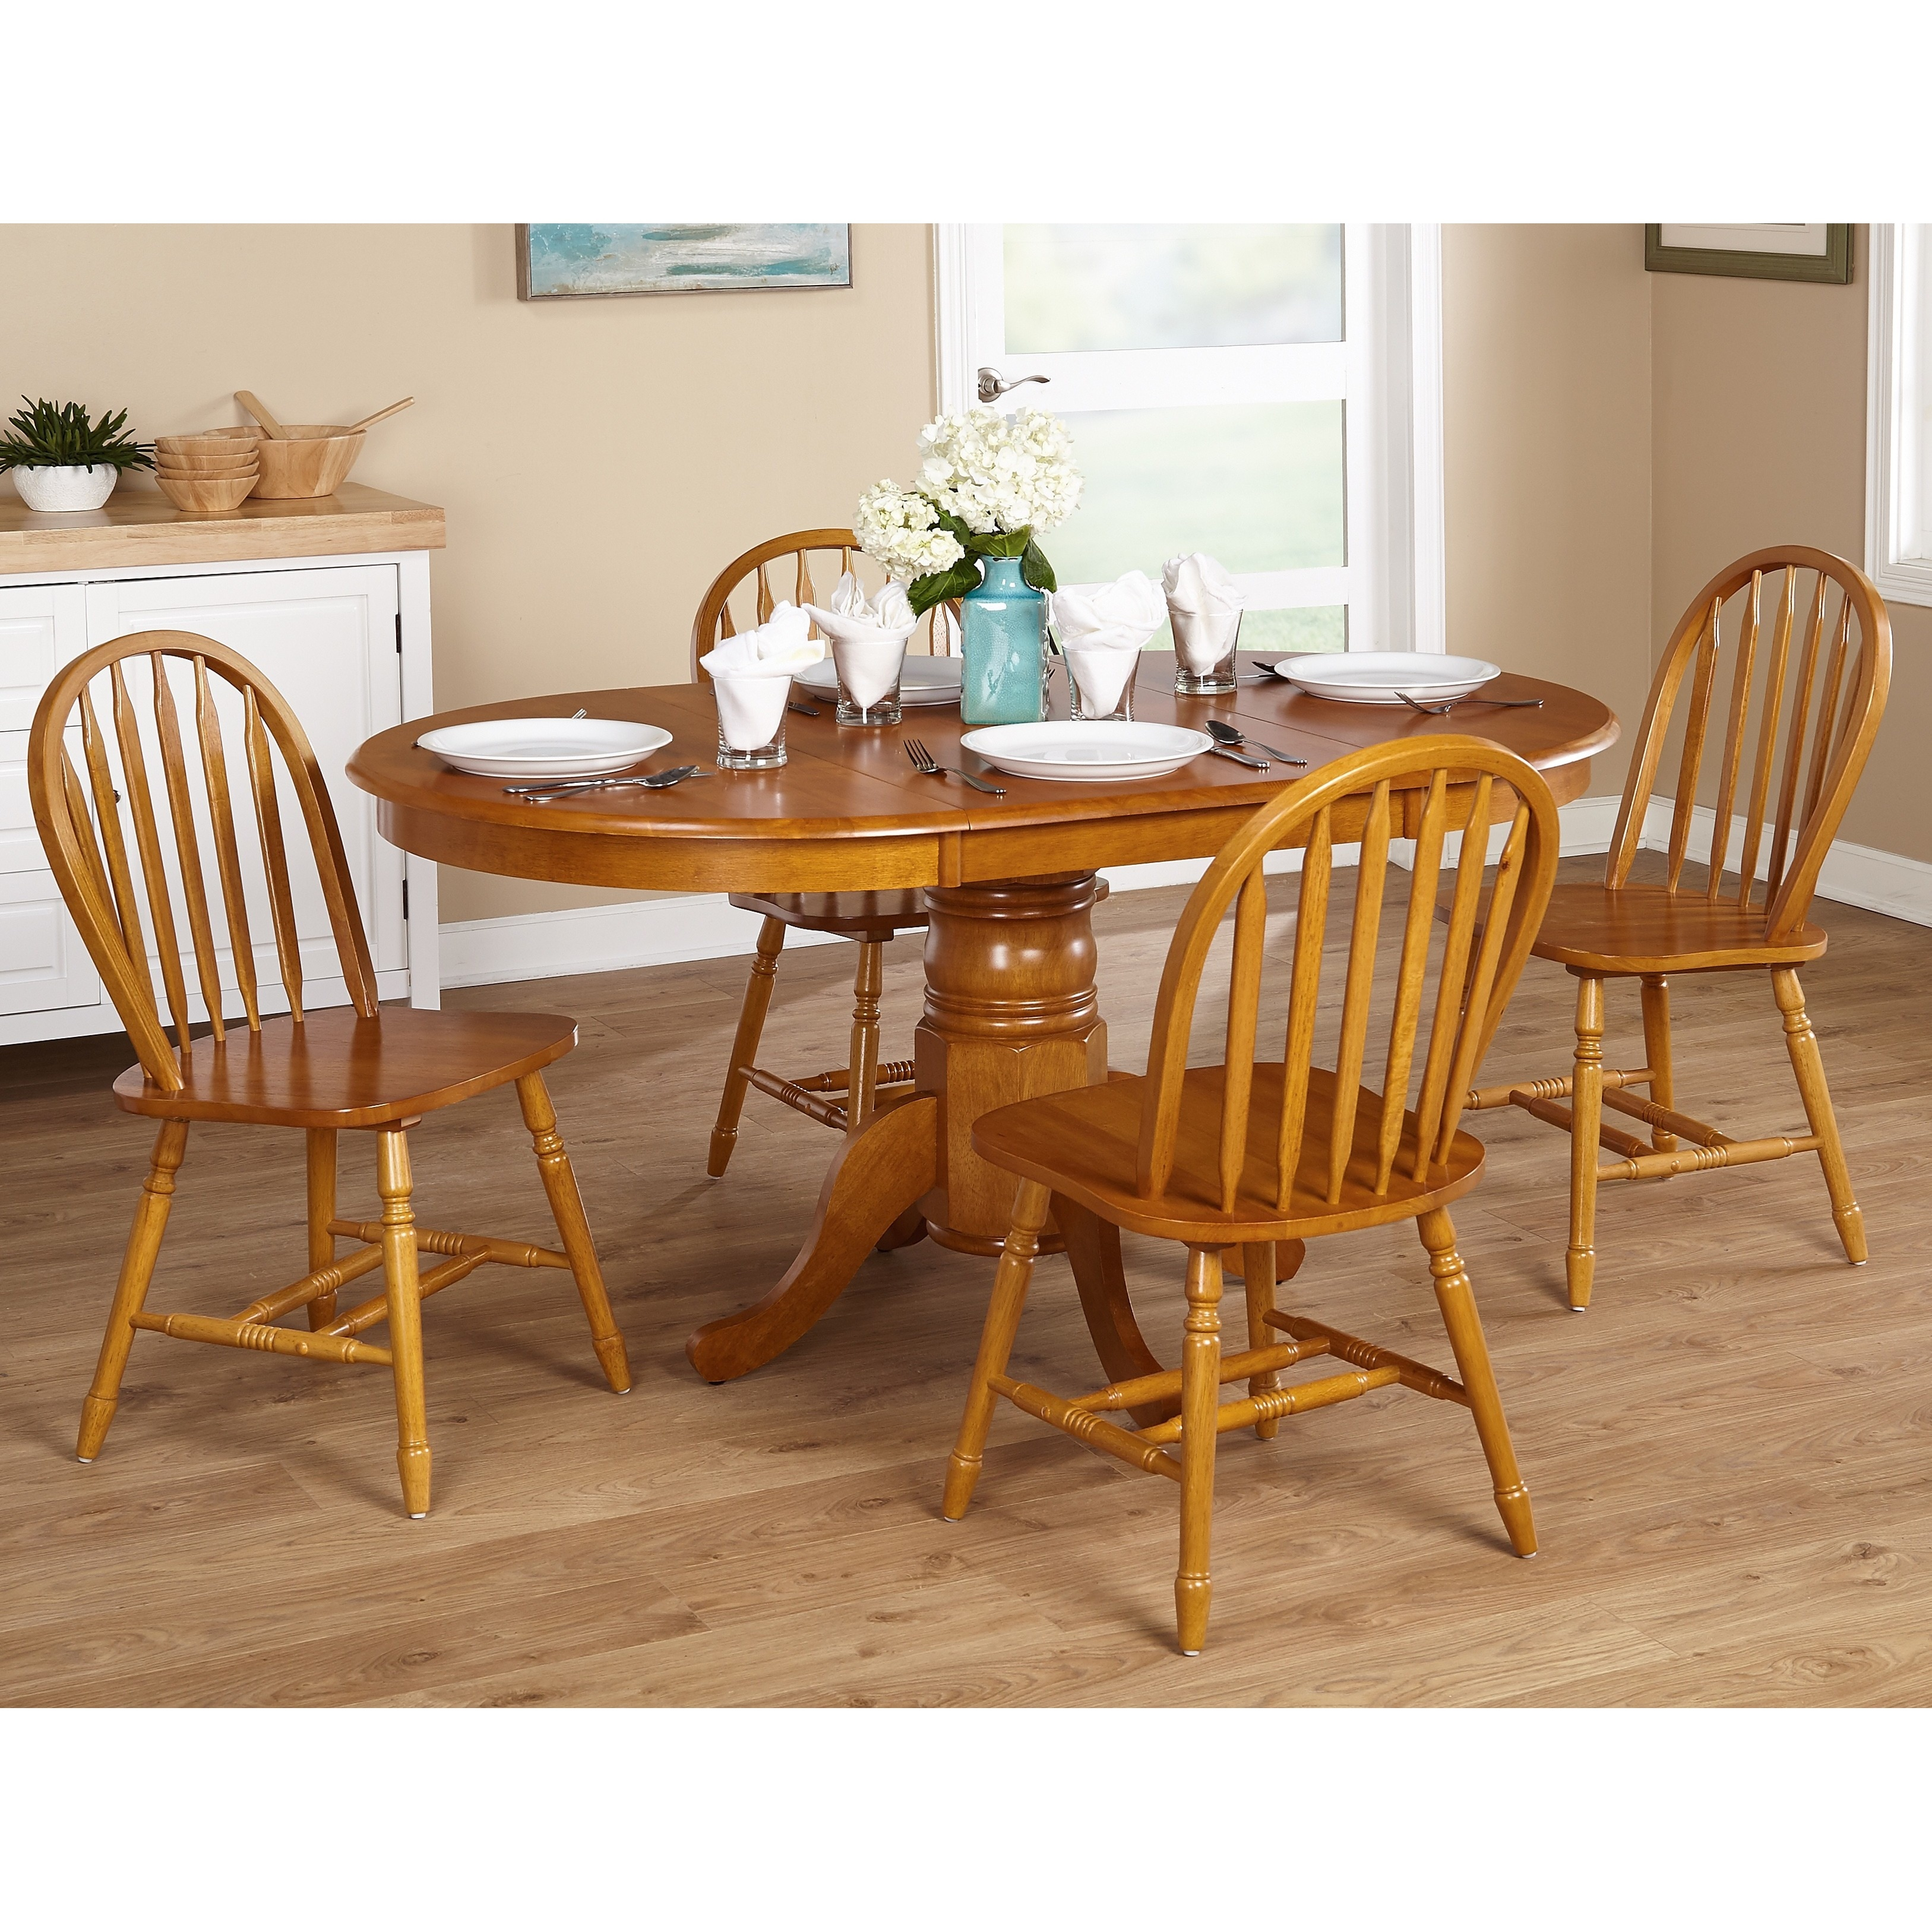 Elegant Simple Living Farmhouse 5 Or 7 Piece Oak Dining Set   Free Shipping Today    Overstock   11572866